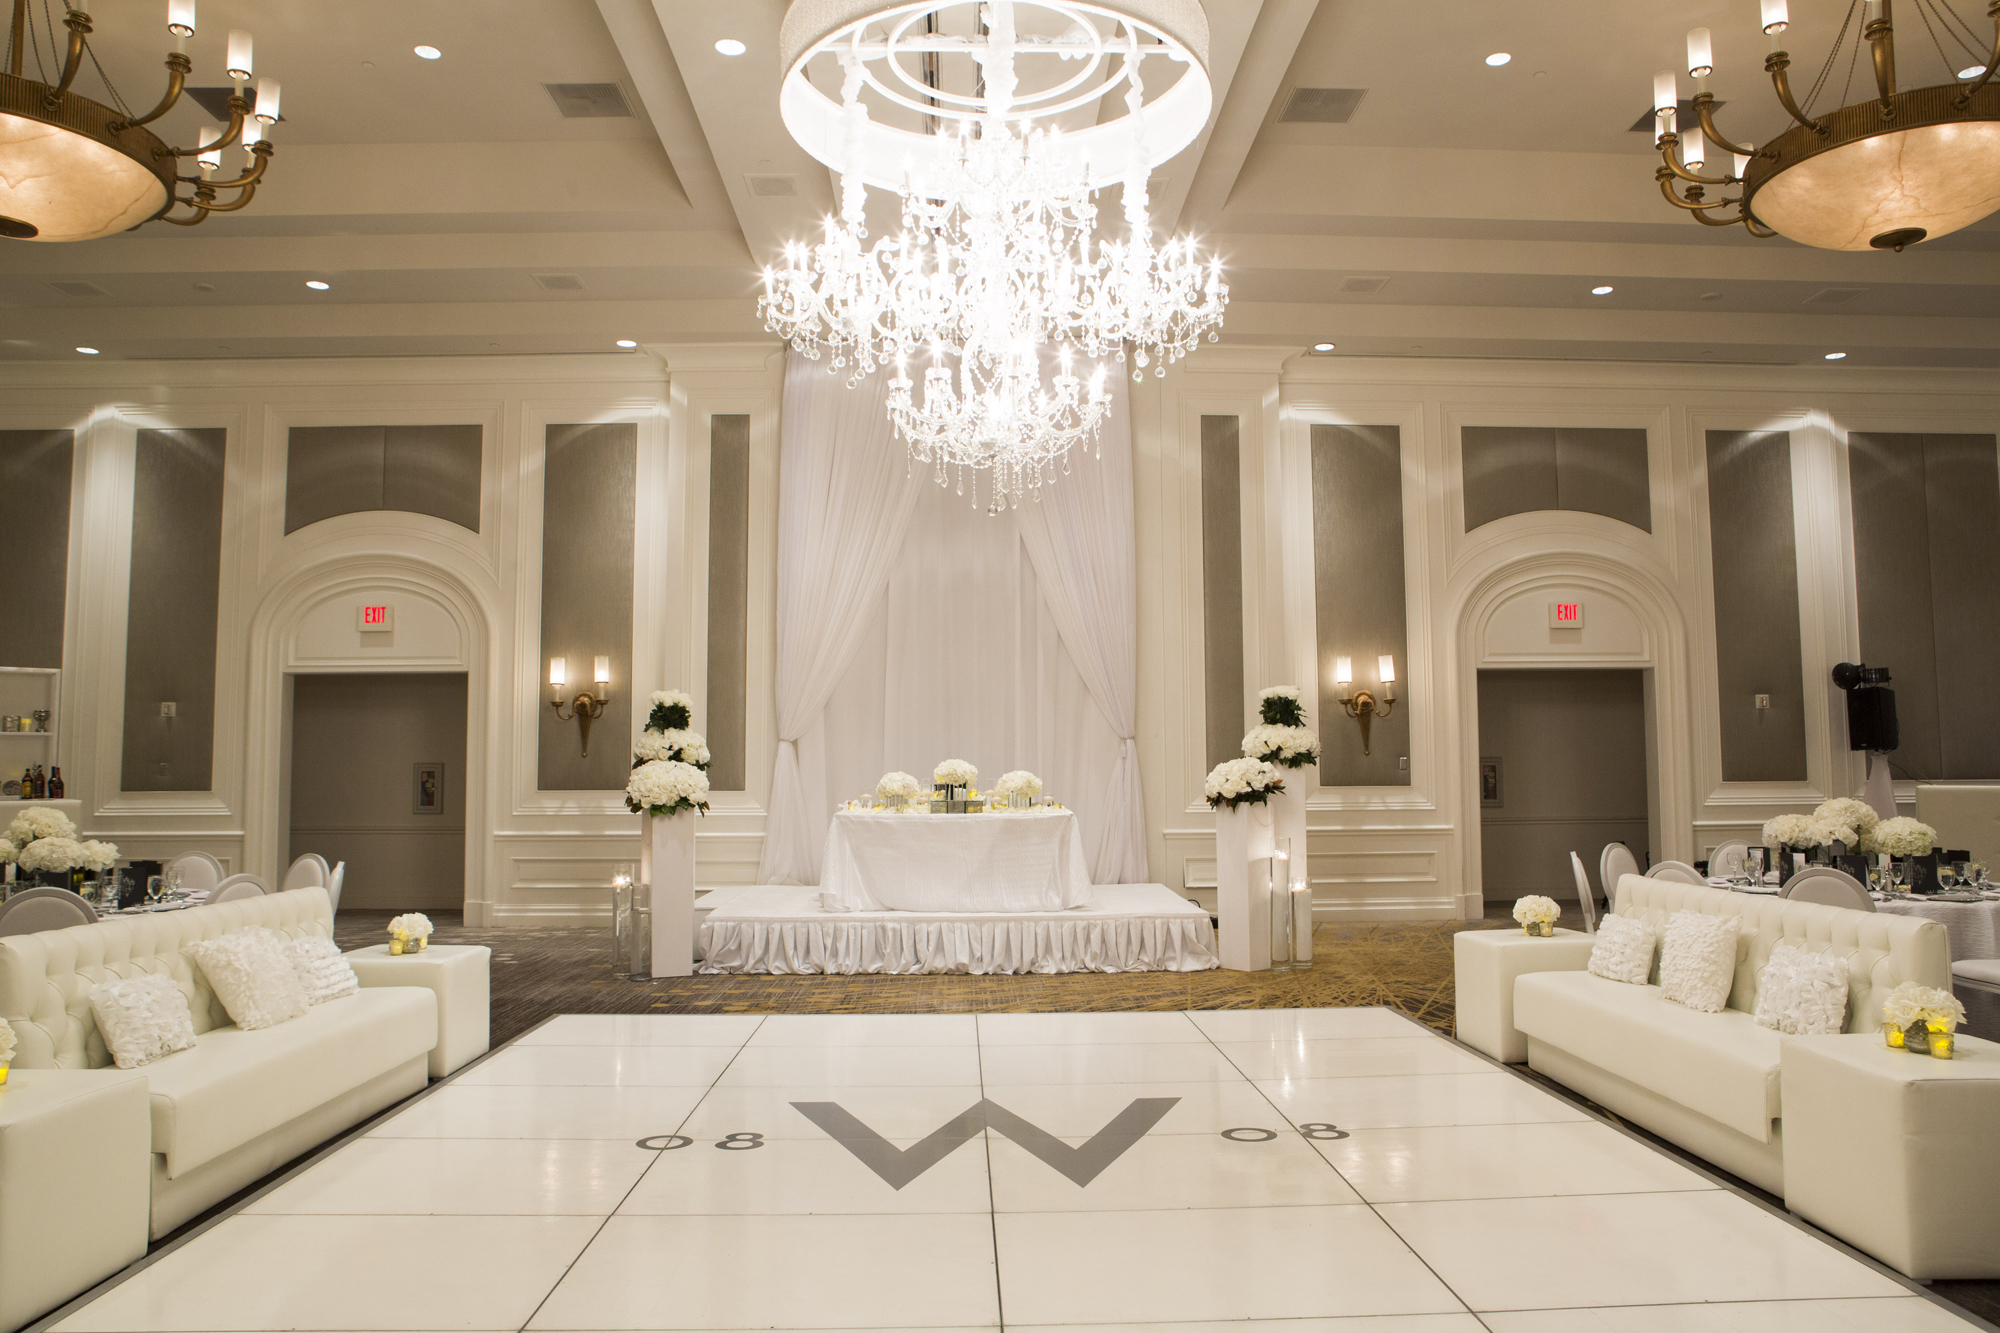 Four Seasons Las Vegas Wedding - Andrea Eppolito Events